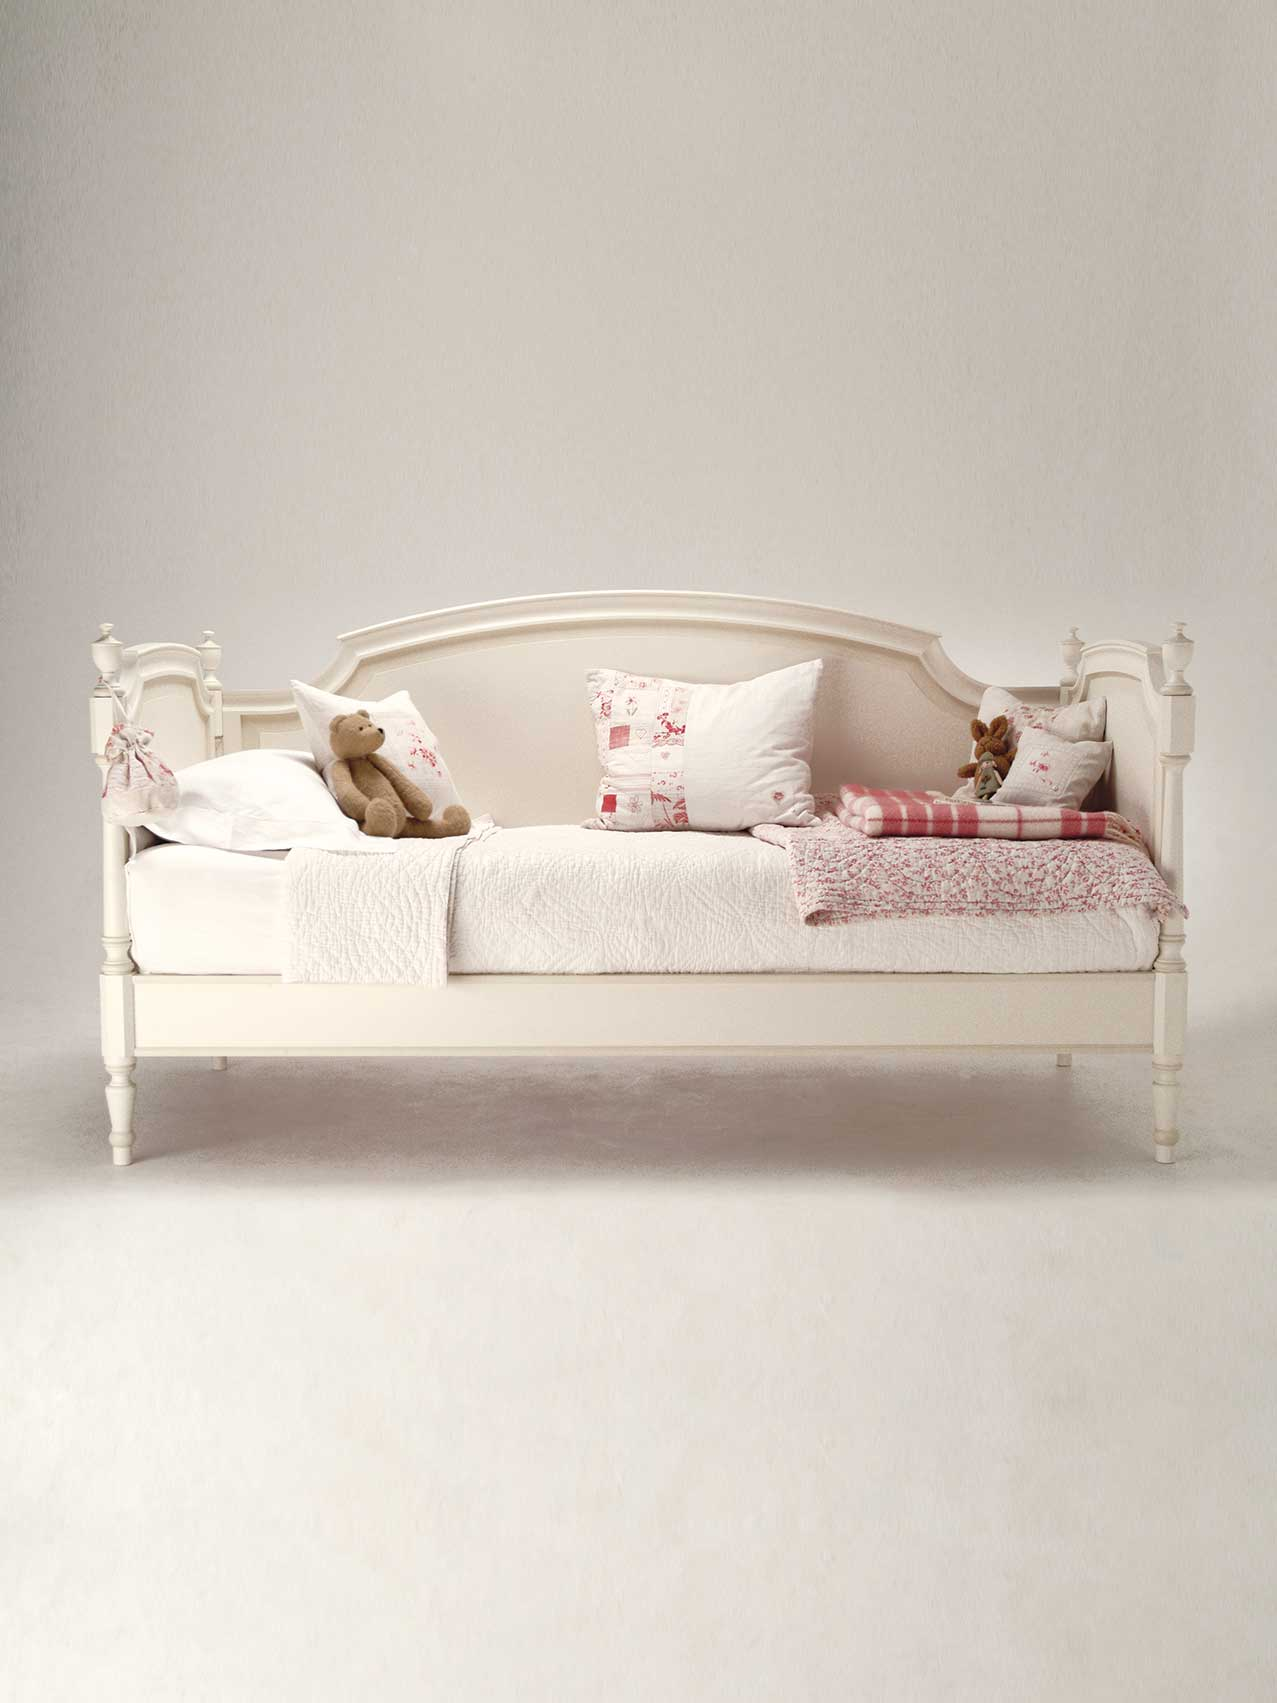 Children S Day Beds 104 504 Leporello